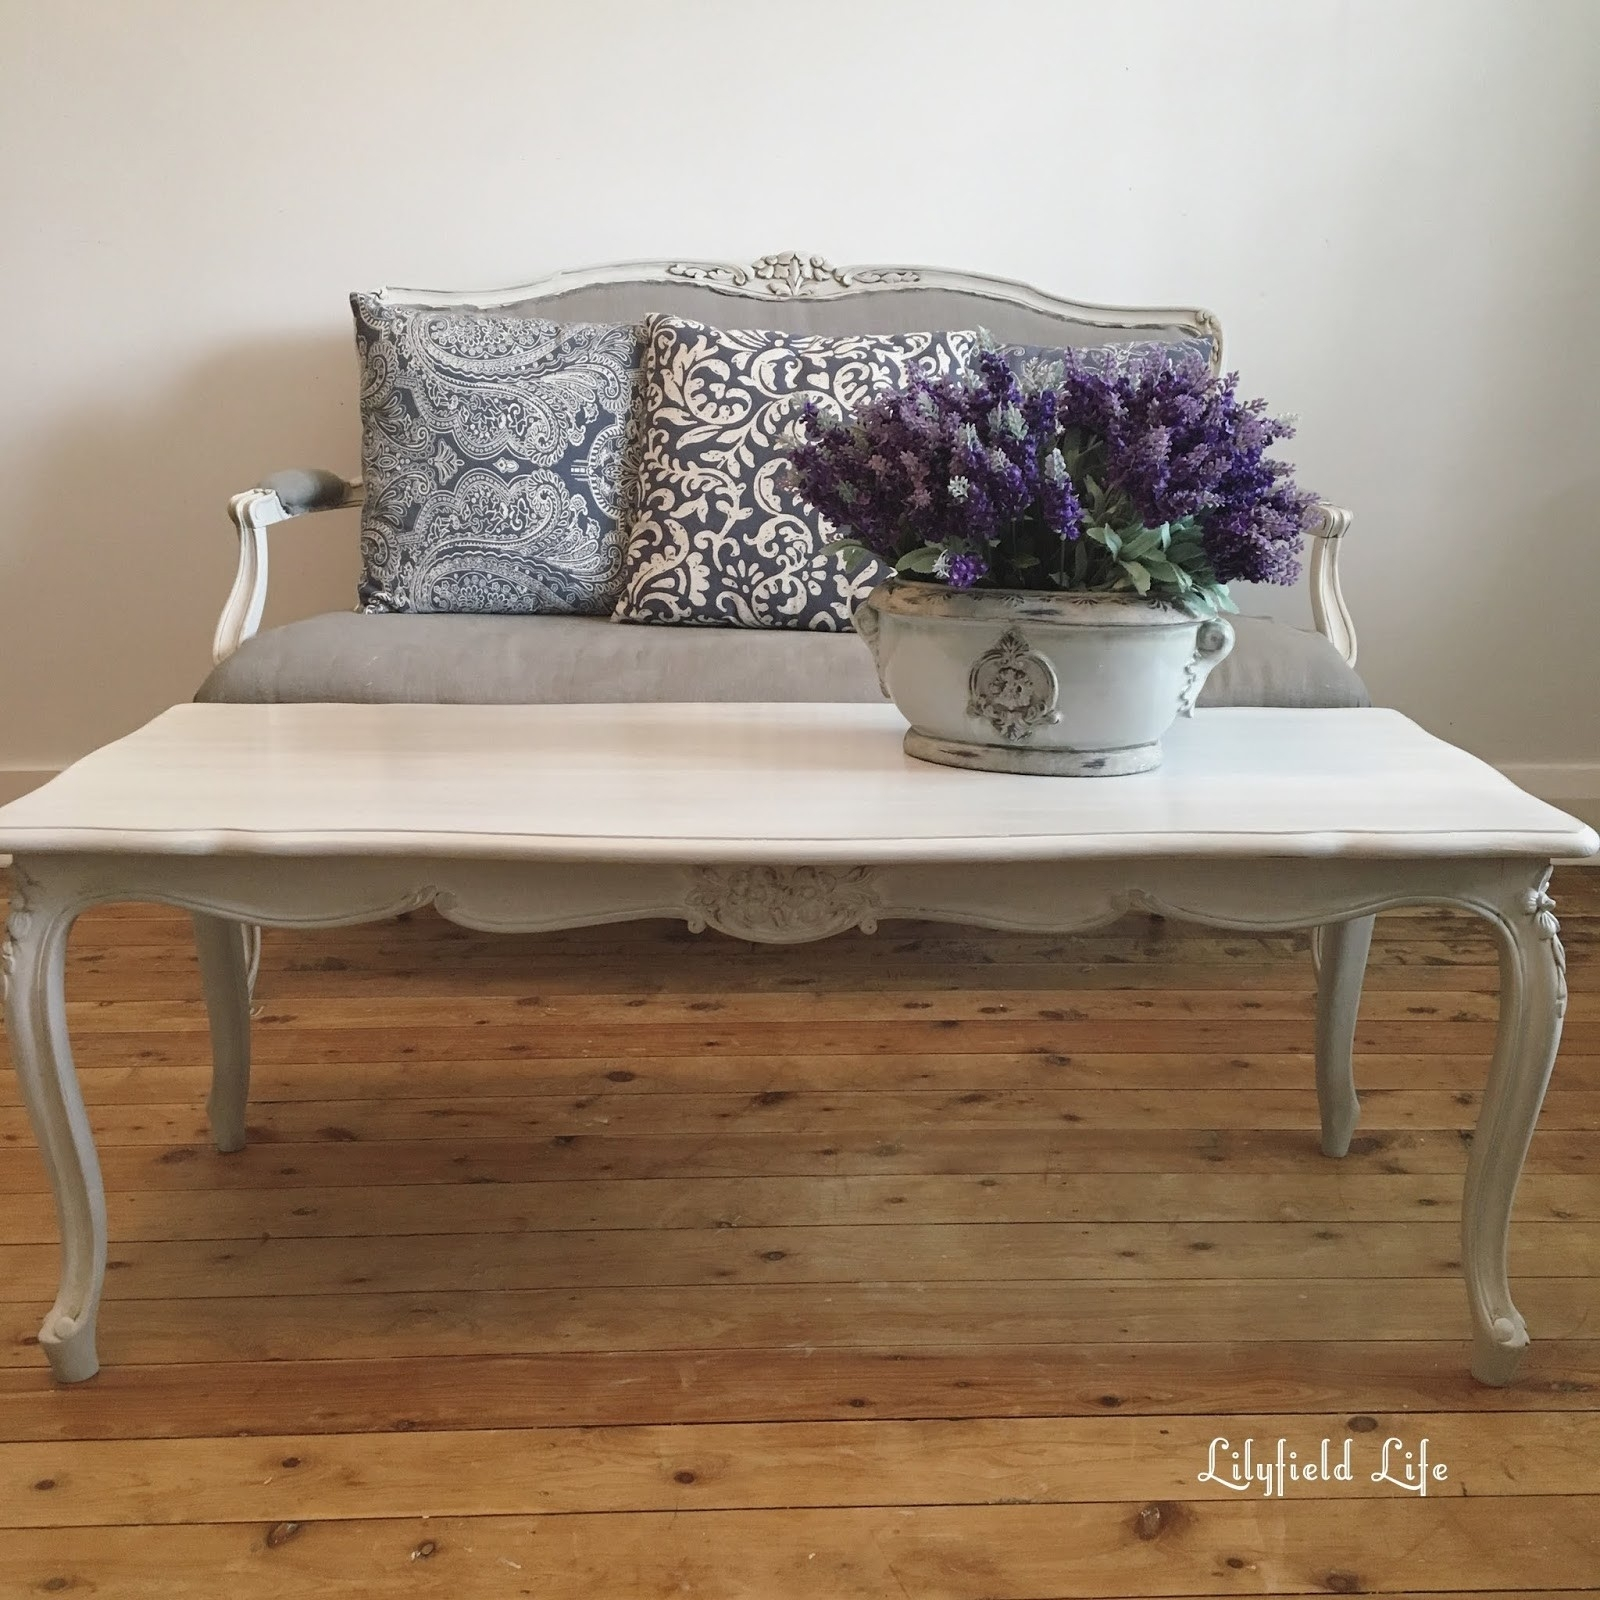 Lime Wash Coffee Table Inspirational Lilyfield Life October 2016 in Limewash Coffee Tables (Image 15 of 30)